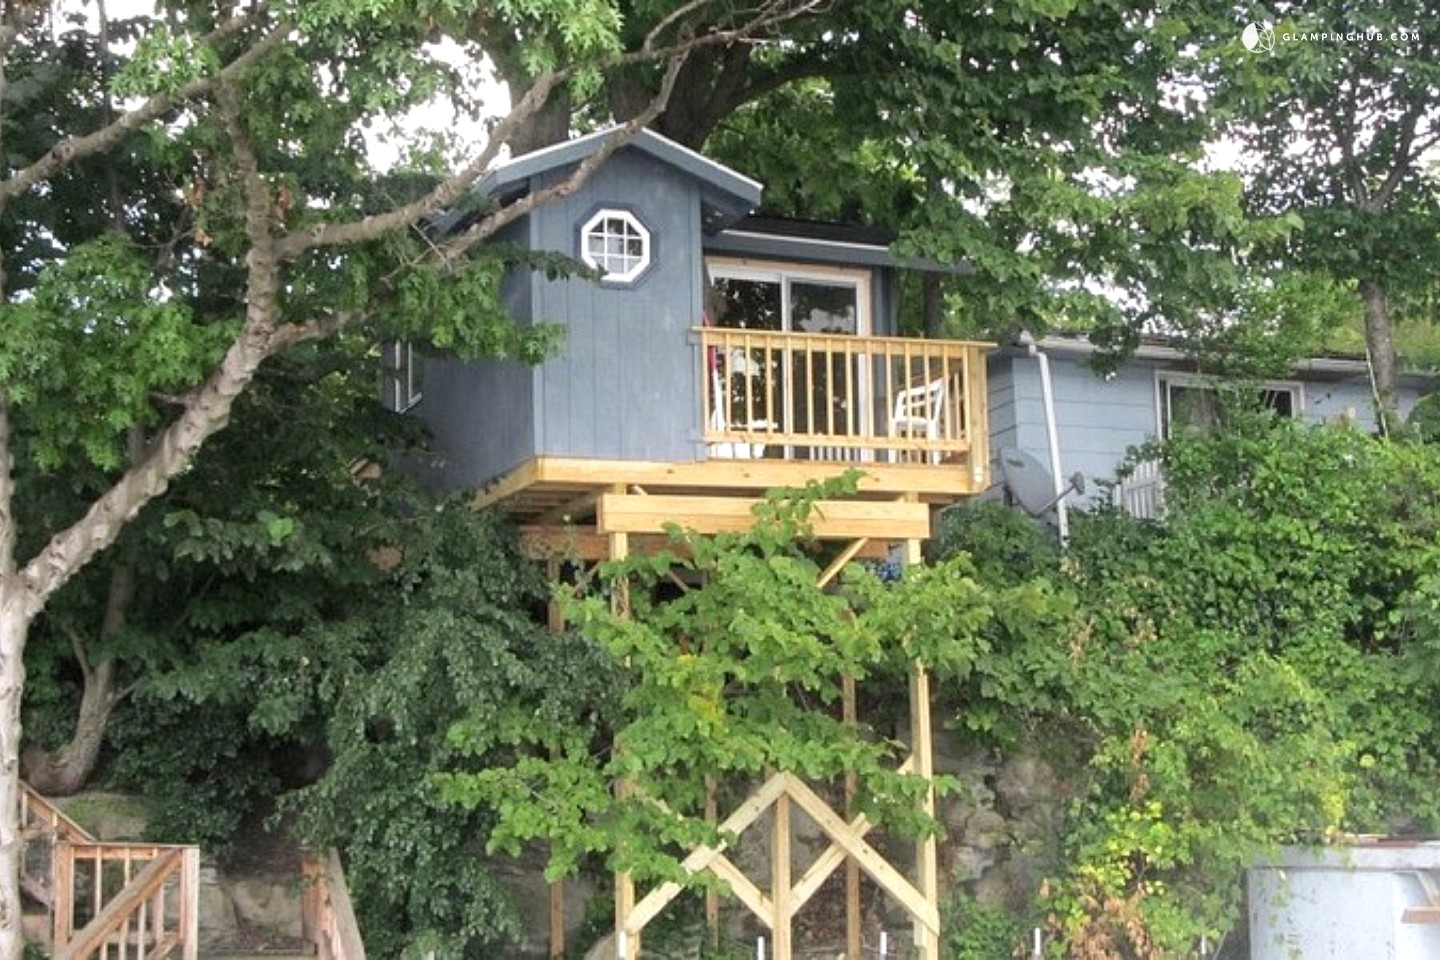 Stunning tree house cabins overlooking cayuga lake new york for Treehouse cabins aurora ny